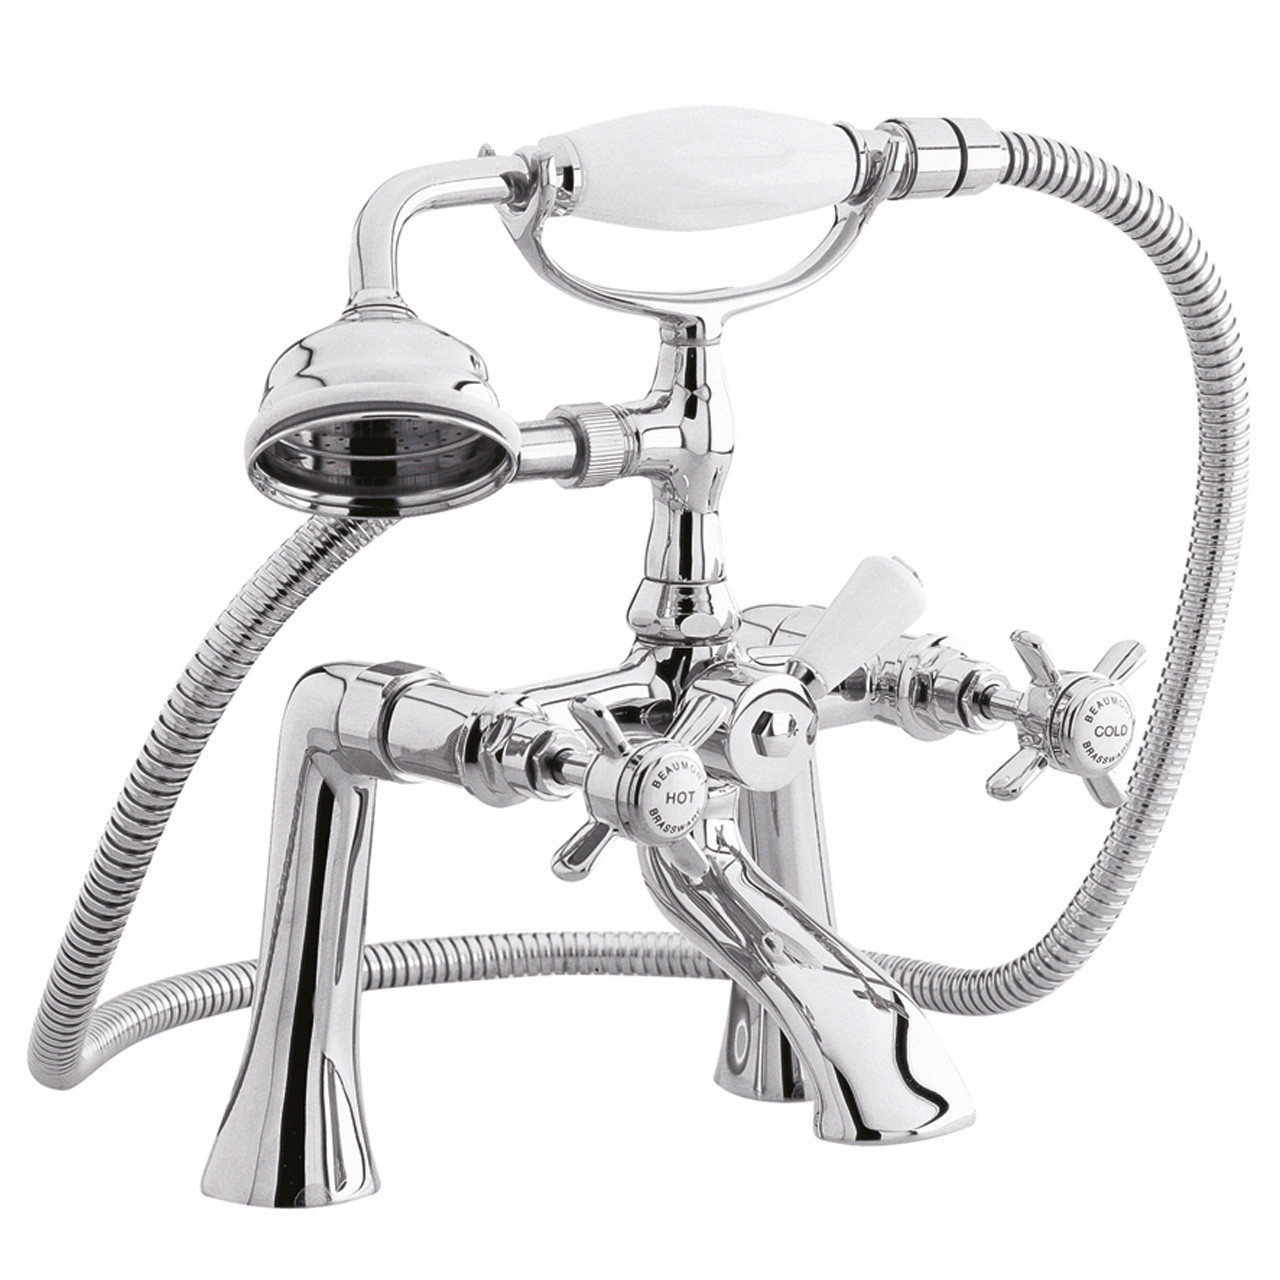 Ultra Beaumont 1/2 Bath and Shower Mixer with Shower Kit - I304X